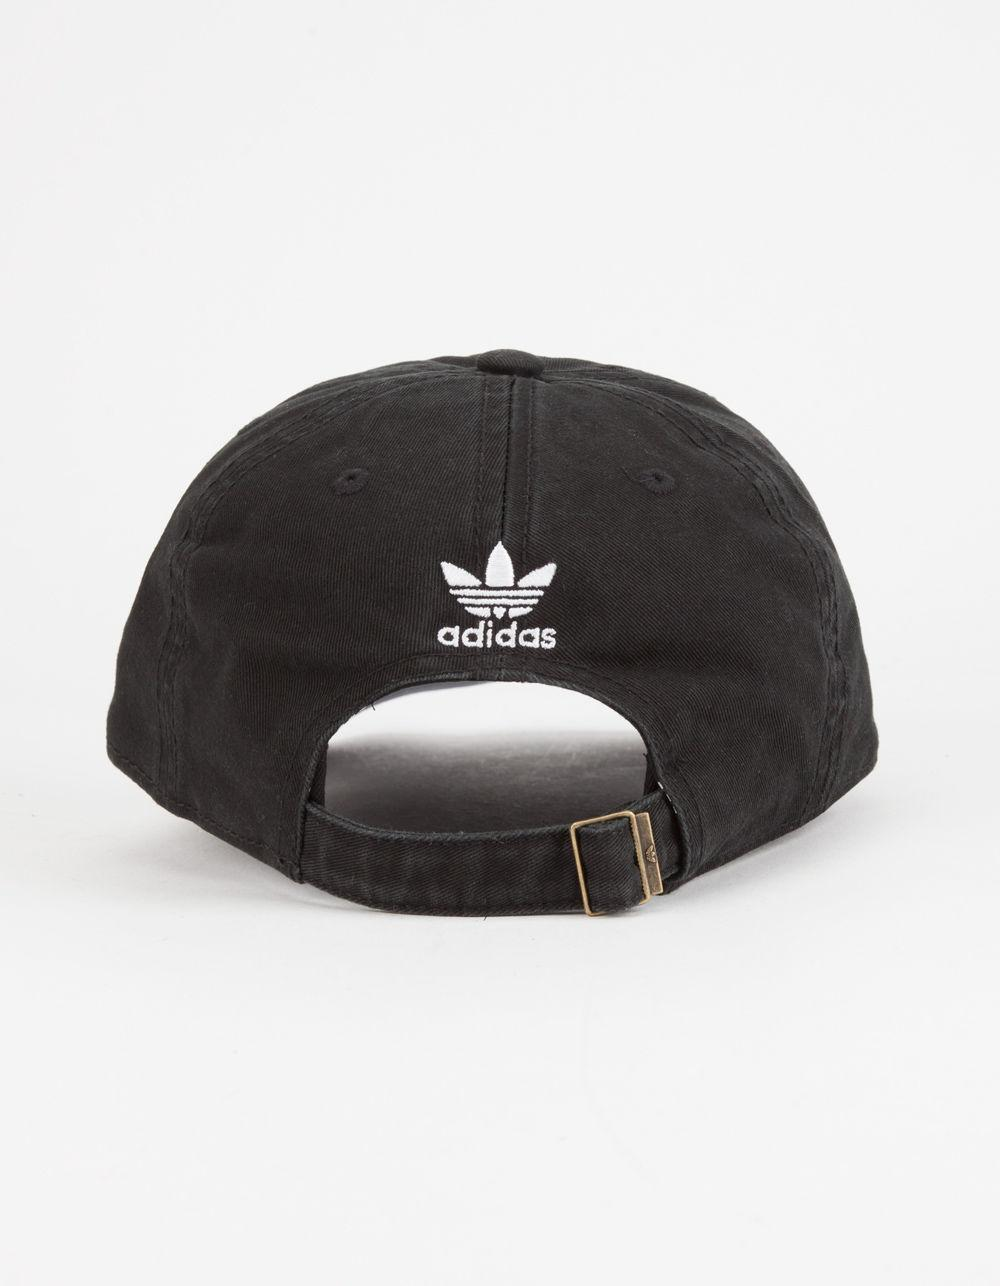 Lyst - adidas Originals Relaxed Mens Dad Hat in Black for Men 769bf04df52